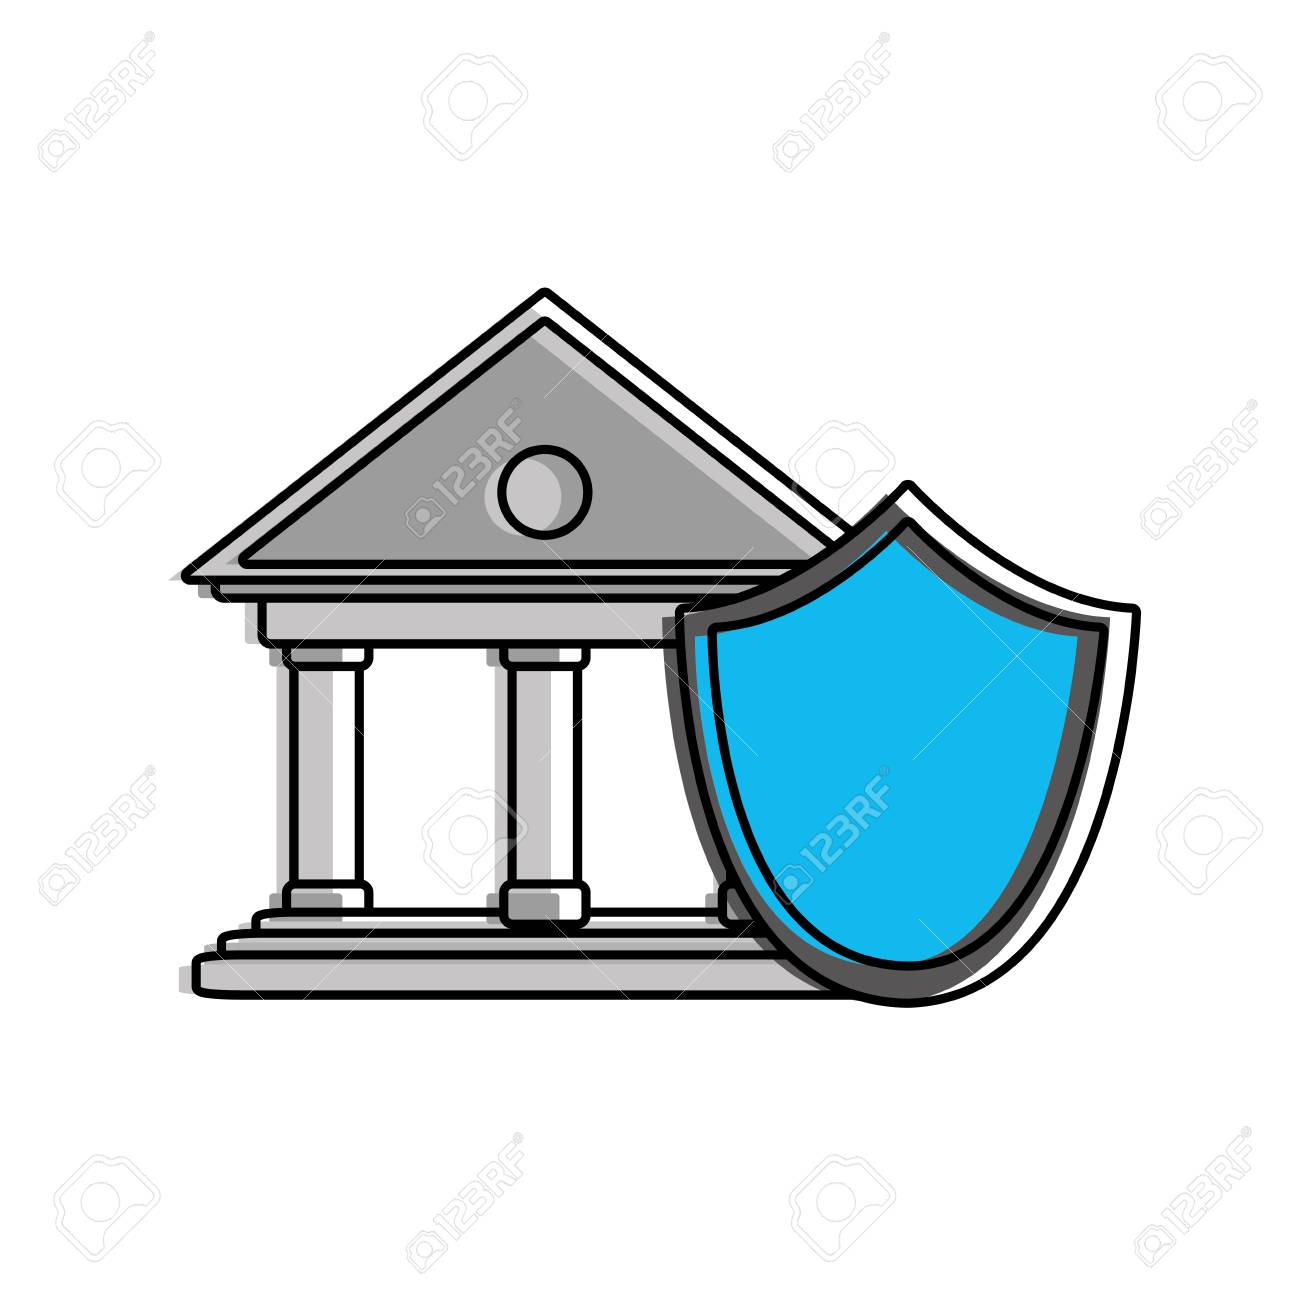 color finance bank economy with shield security Stock Vector - 94941395  sc 1 st  123RF.com & Color Finance Bank Economy With Shield Security Royalty Free ...